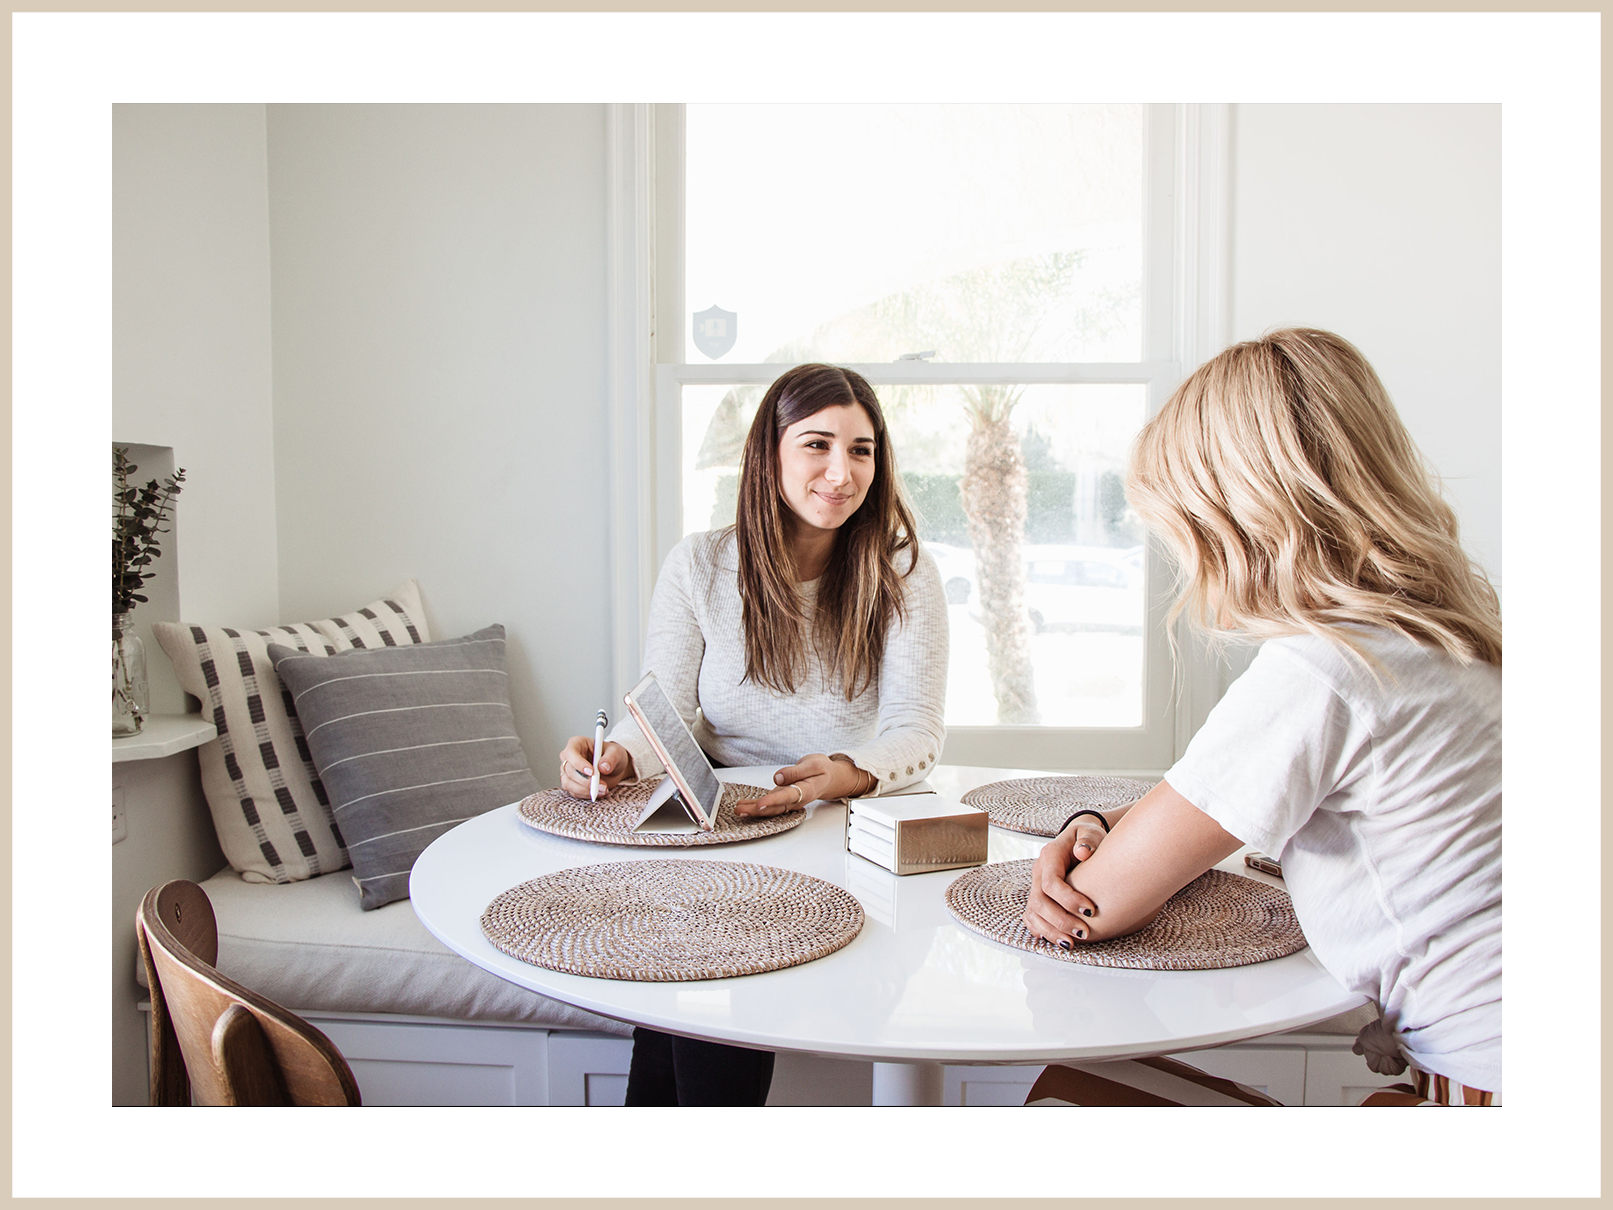 Custom Consult - We will identify any challenges you may be confronting in your space, establish a clear vision of success for your space, and create a plan of action to reach your goals.This service includes:▻ Comprehensive space consultation▻ Customized action plan for your space▻ Recommendations + resources